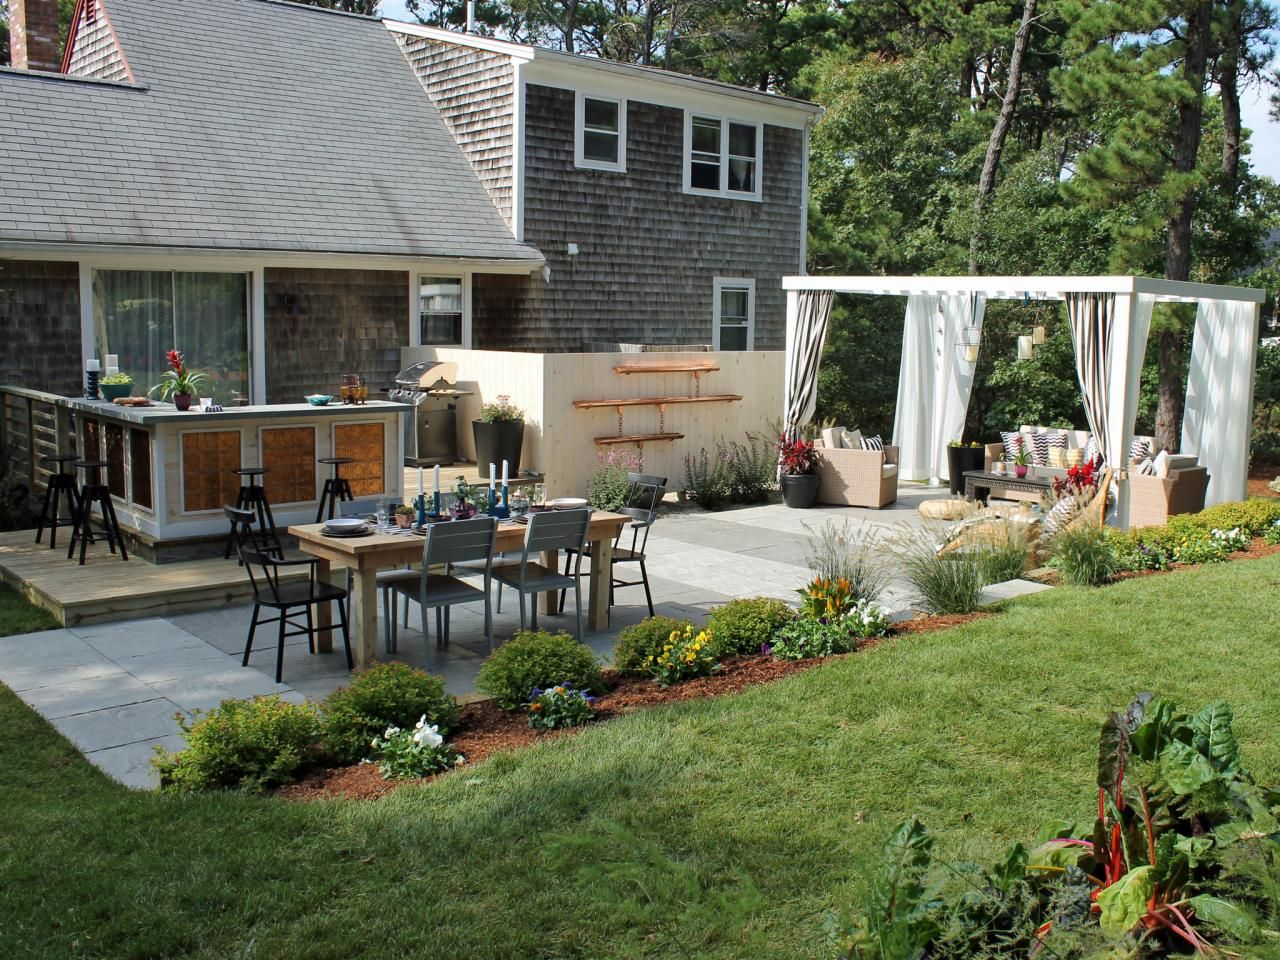 10 total backyard transformations backyard decksbackyard landscapinglandscaping ideasbackyard - Backyard Garden Ideas Before And After